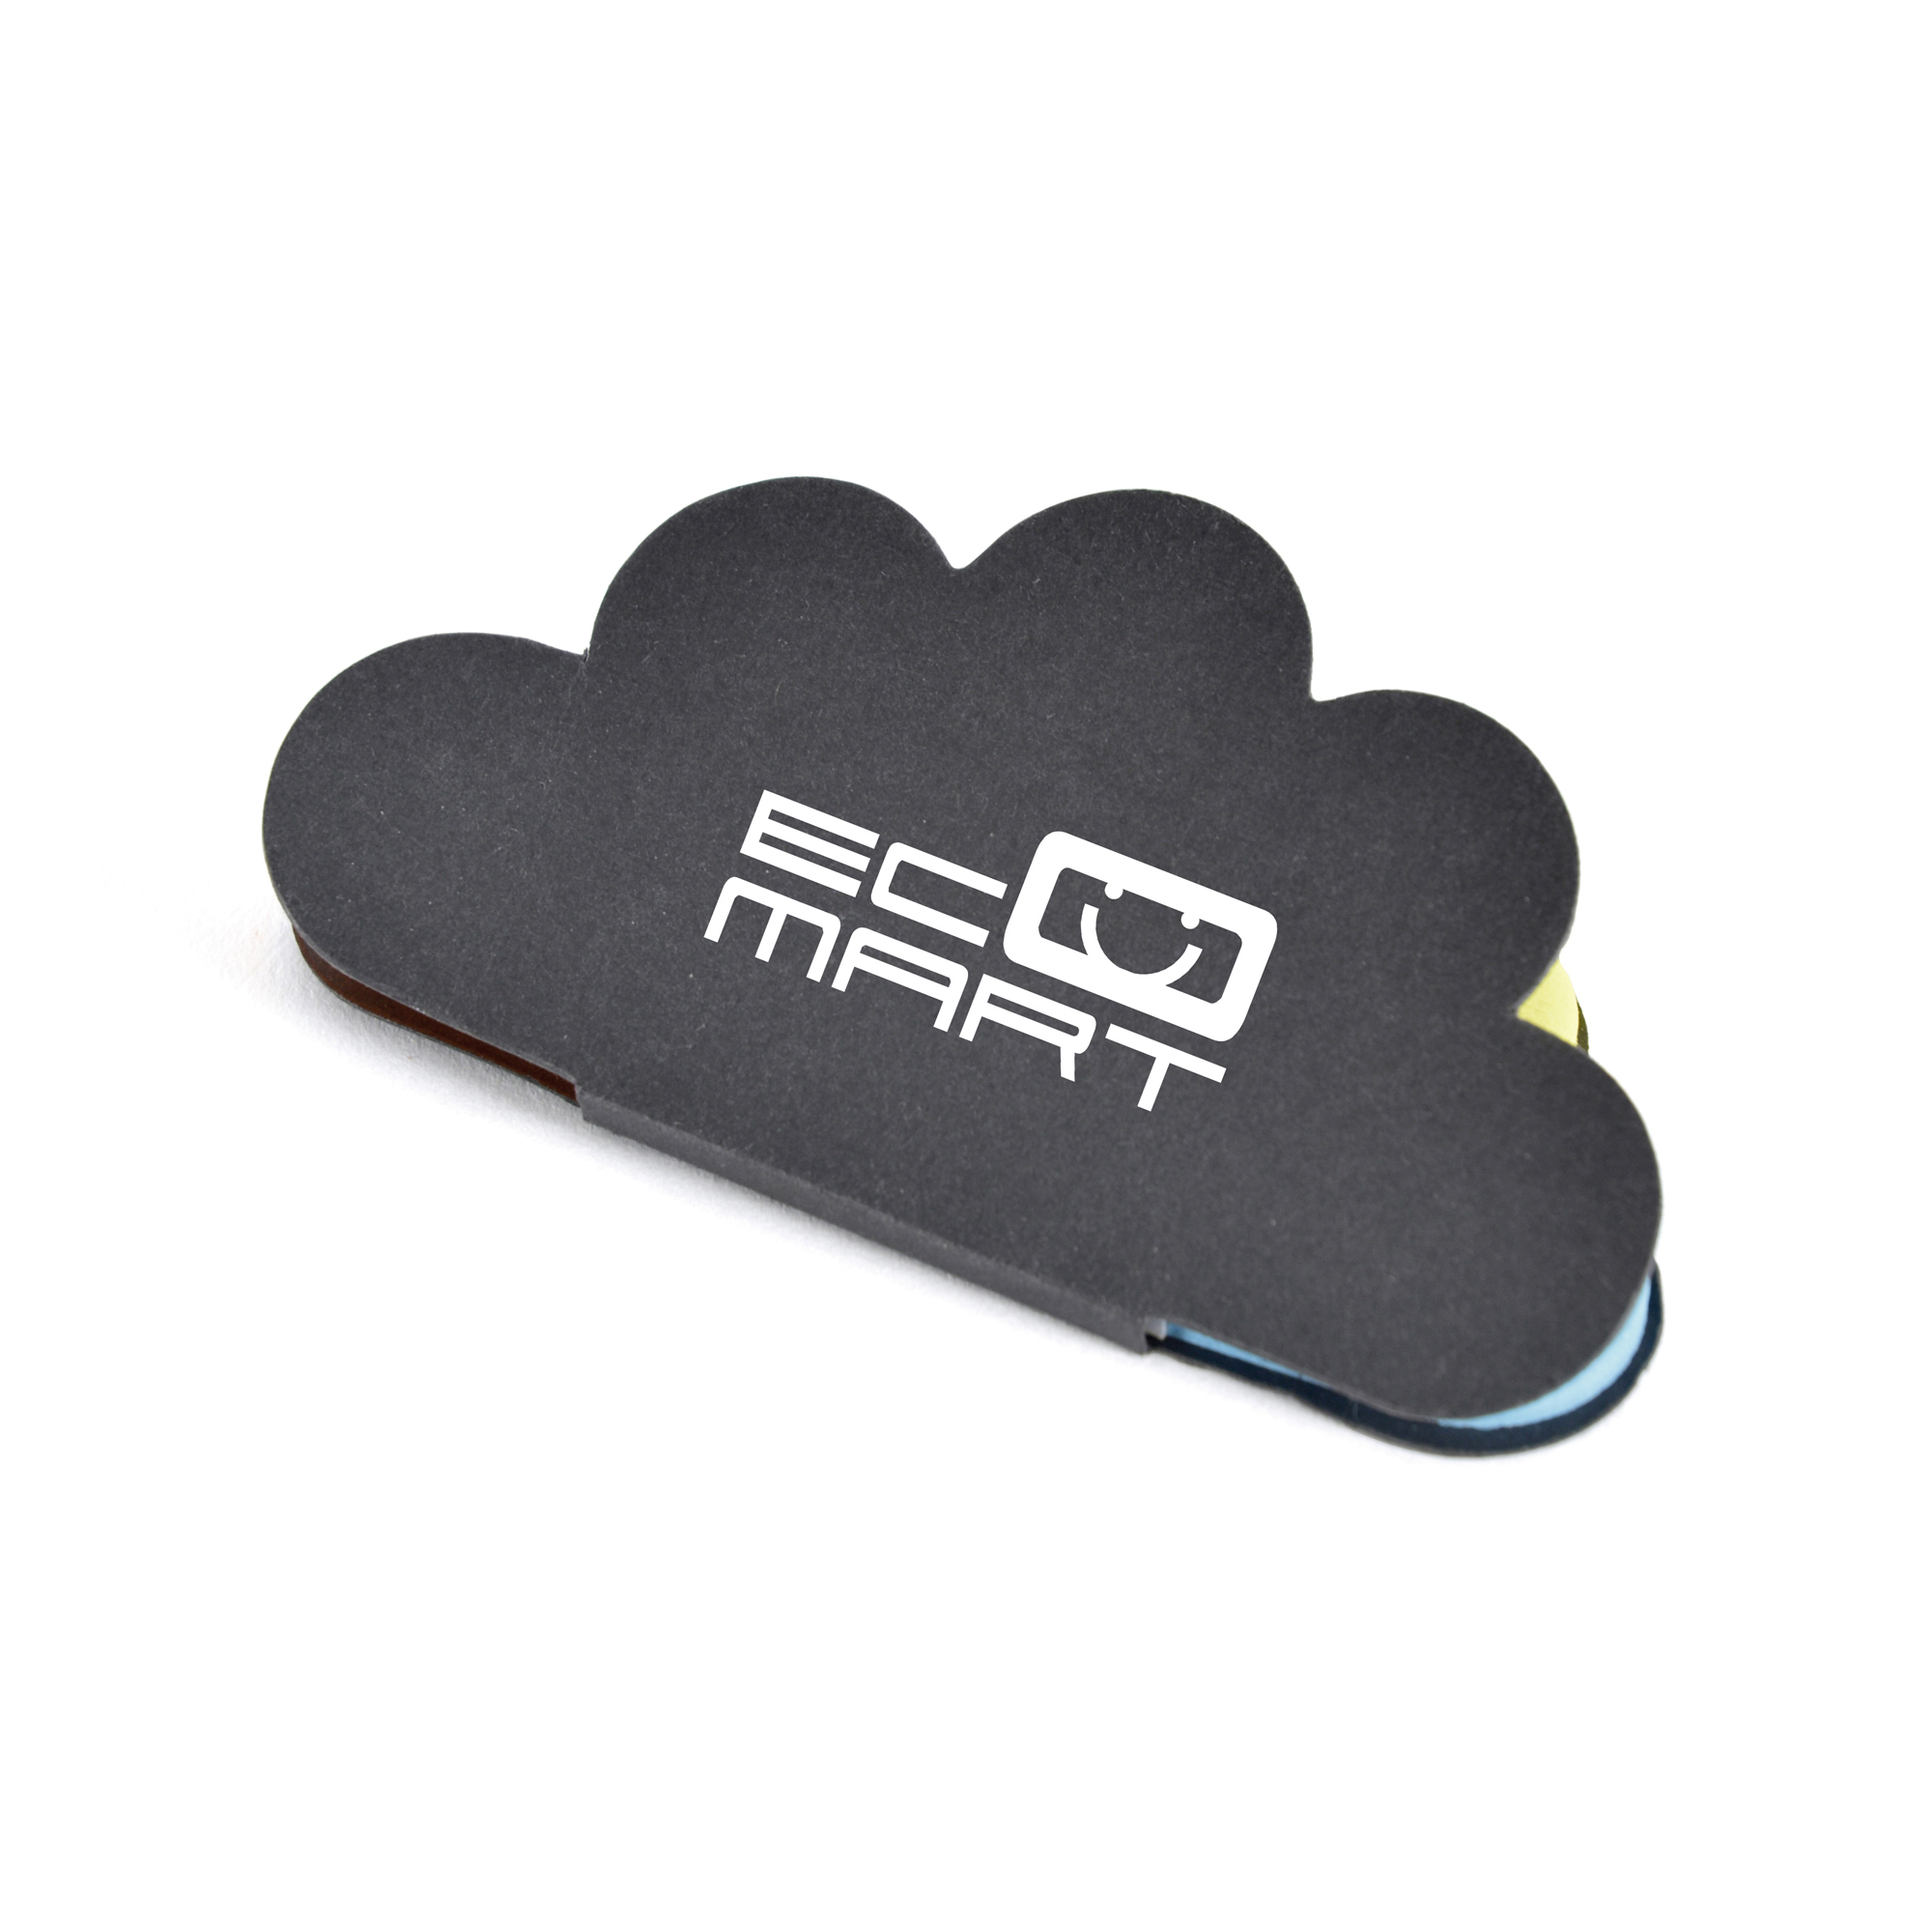 Promotional Cloud Sticky Notes